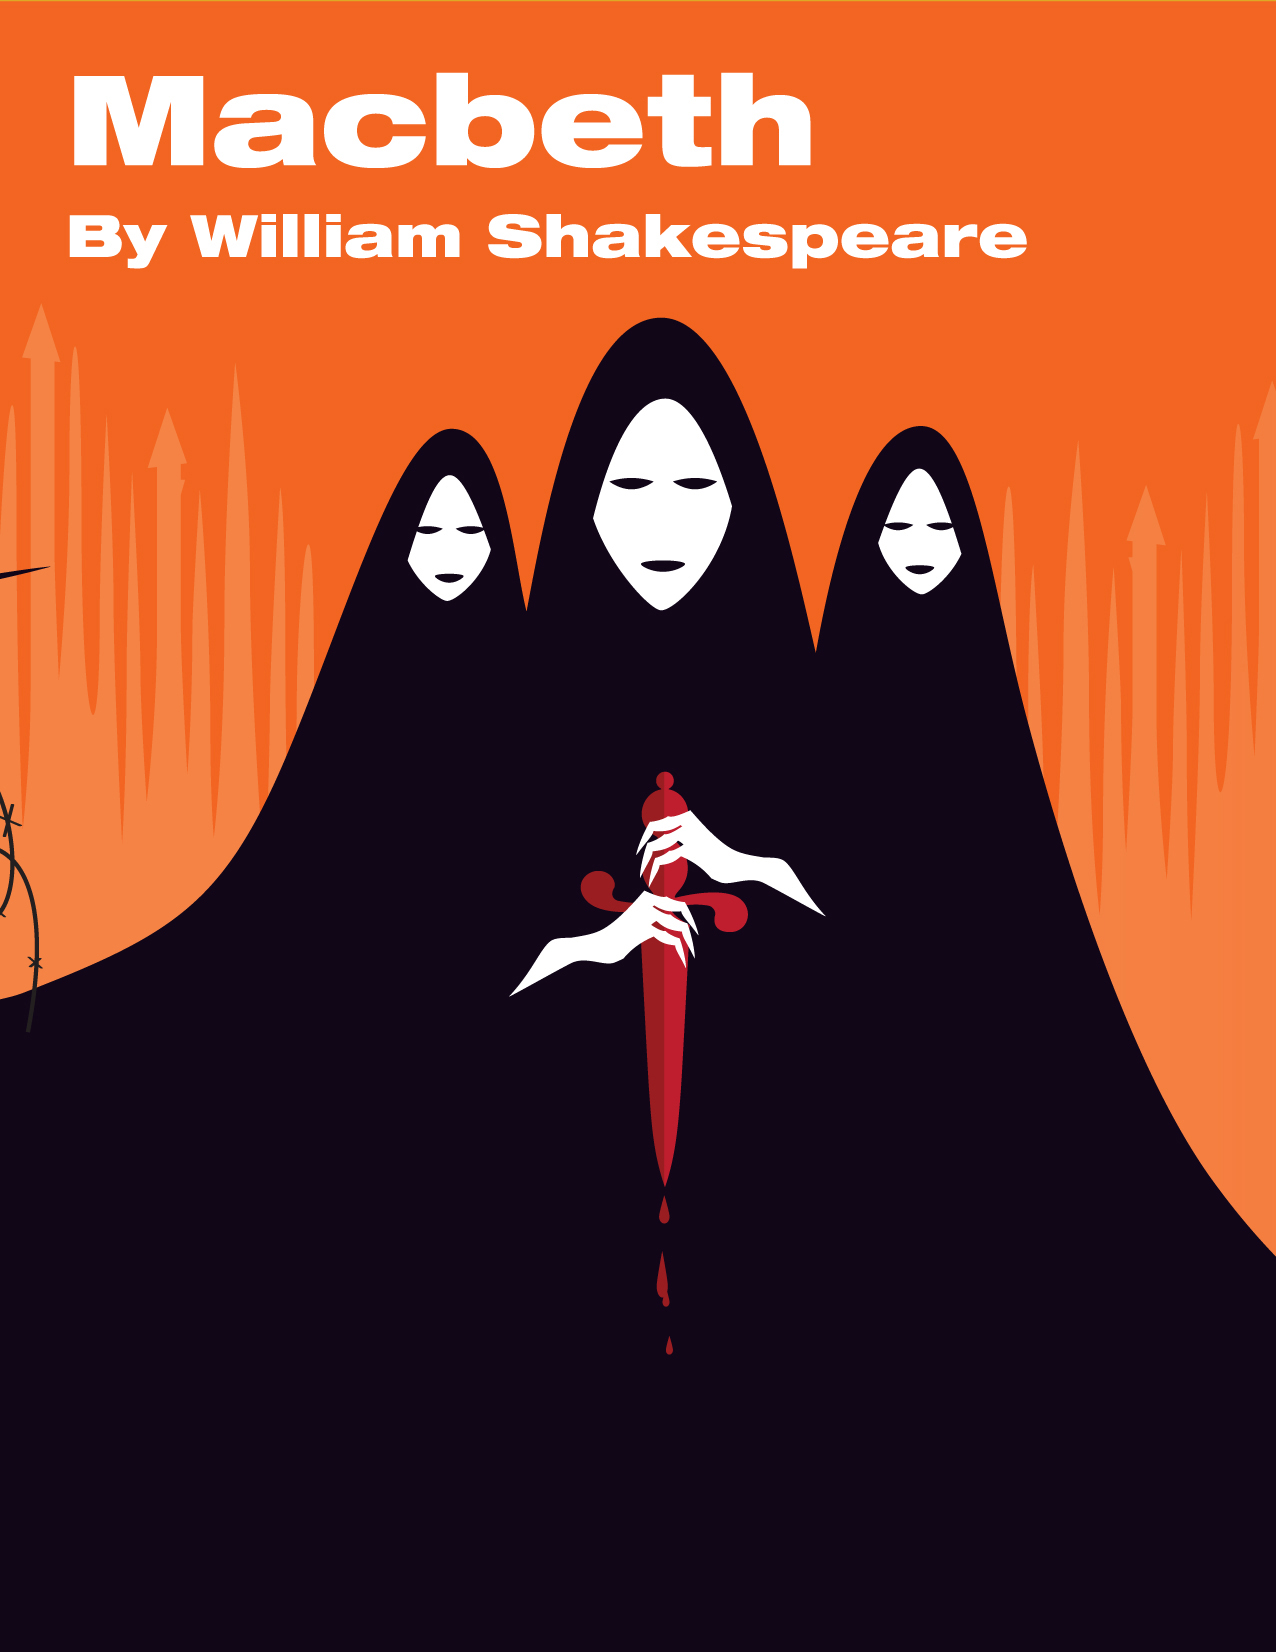 the symbolism of blood in shakespeares play macbeth Imagery of blood in william shakespeare's play macbeth in the play macbeth , william shakespeare uses blood as a symbol throughout the whole story to show the different emotions and themes within the context of the play.